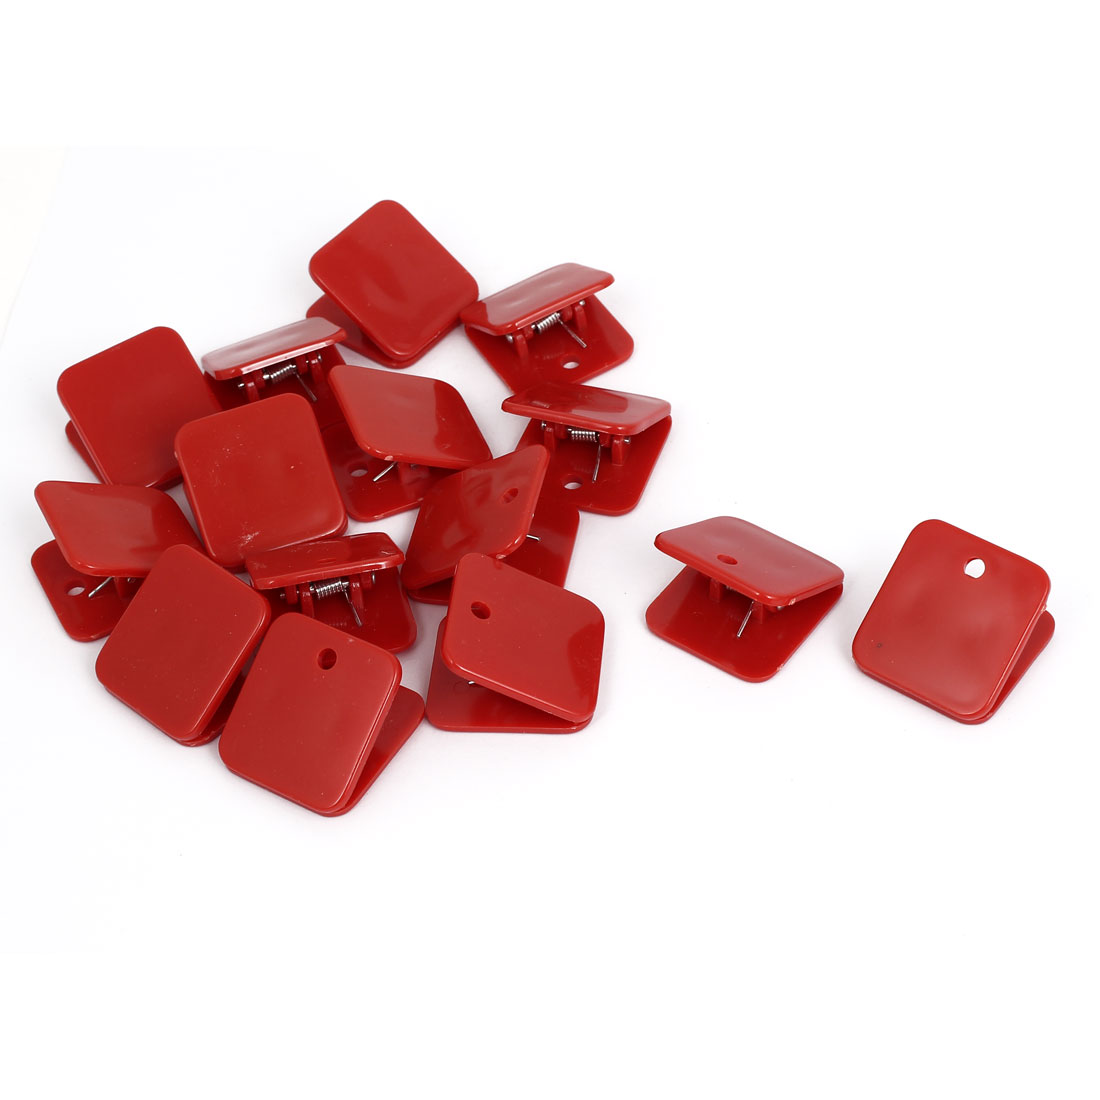 Plastic Square Spring Loaded Paper Document Memo Note Stationery Clip Red 15Pcs